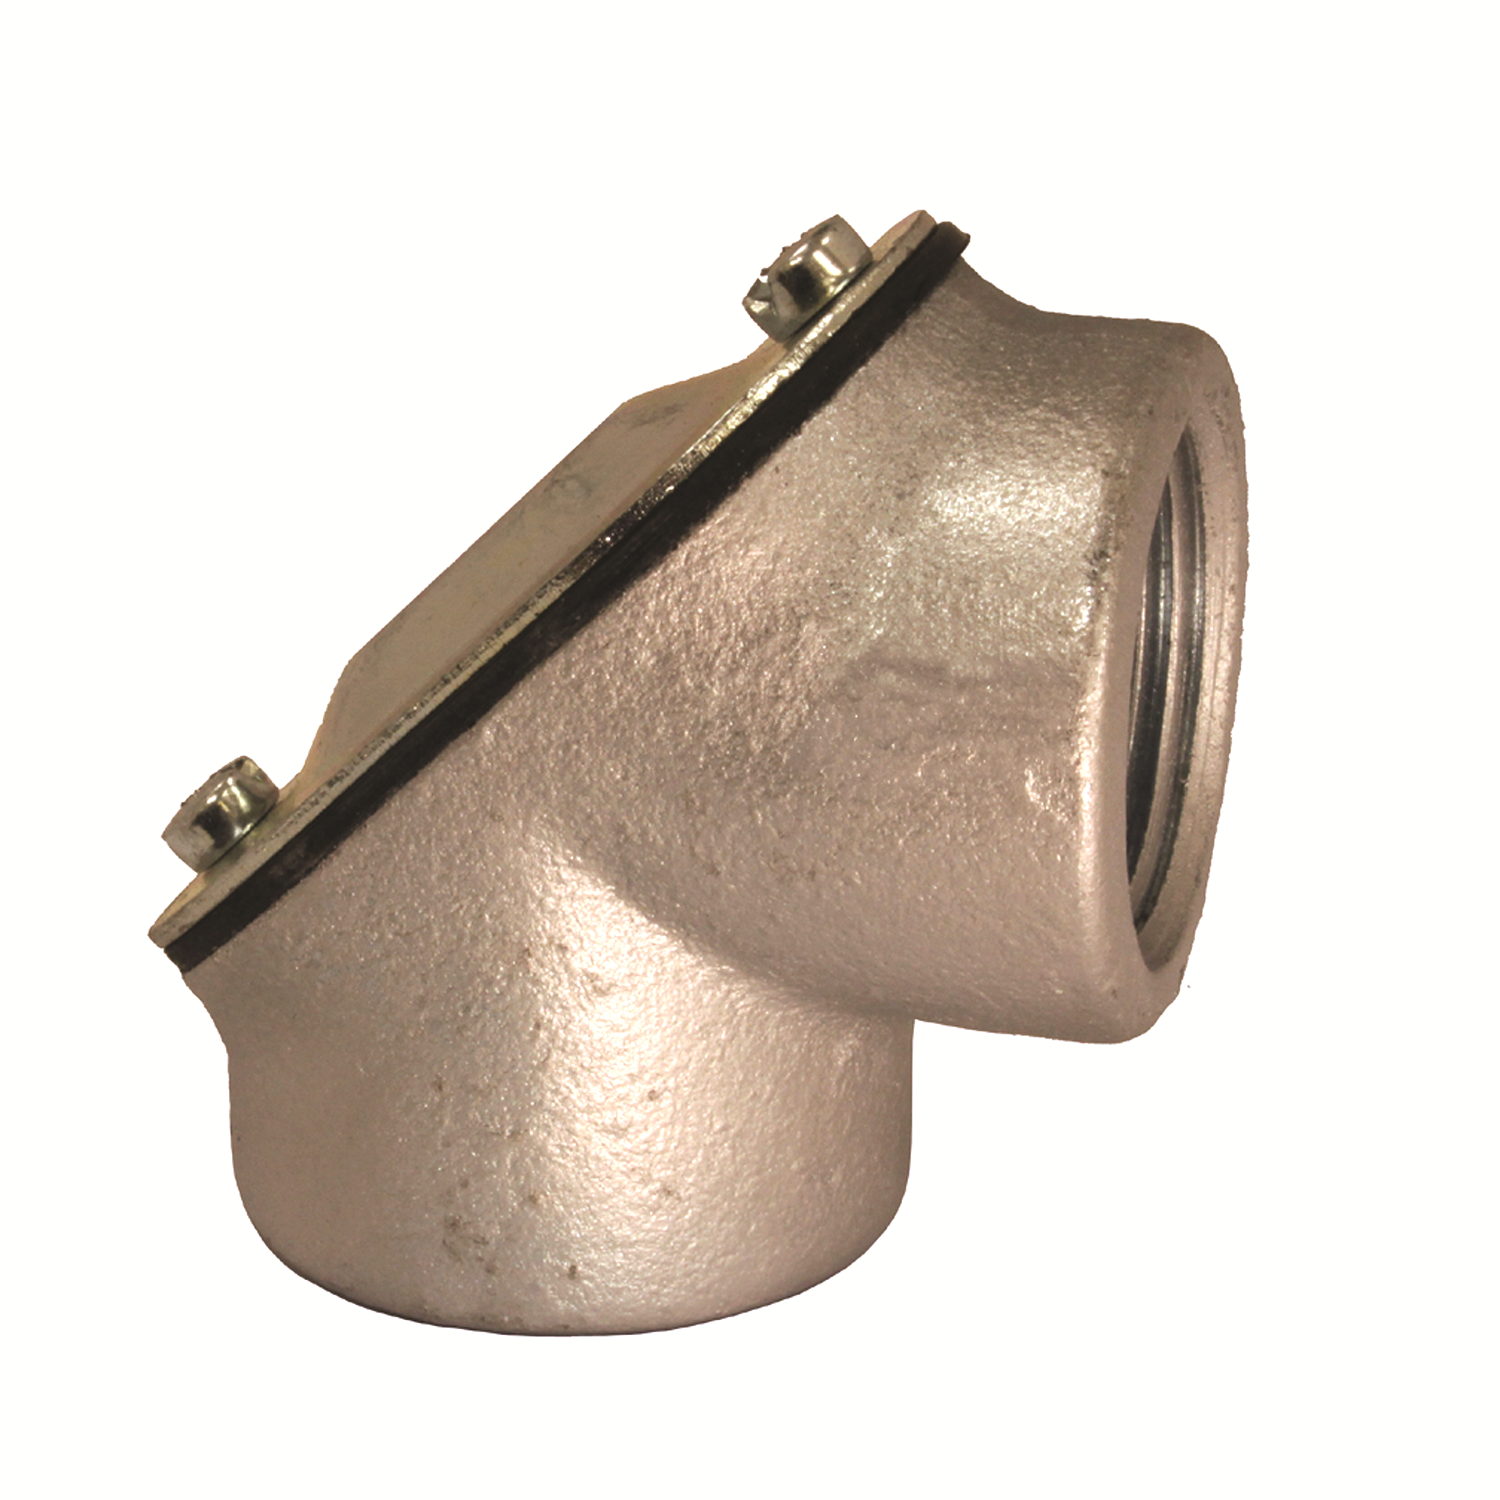 Konkore Fittings PEF-75KON Female x Female Pull Elbow With Steel Cover, Neoprene Gasket, 3/4 in Trade, 90 deg, Malleable Iron, Zinc Plated